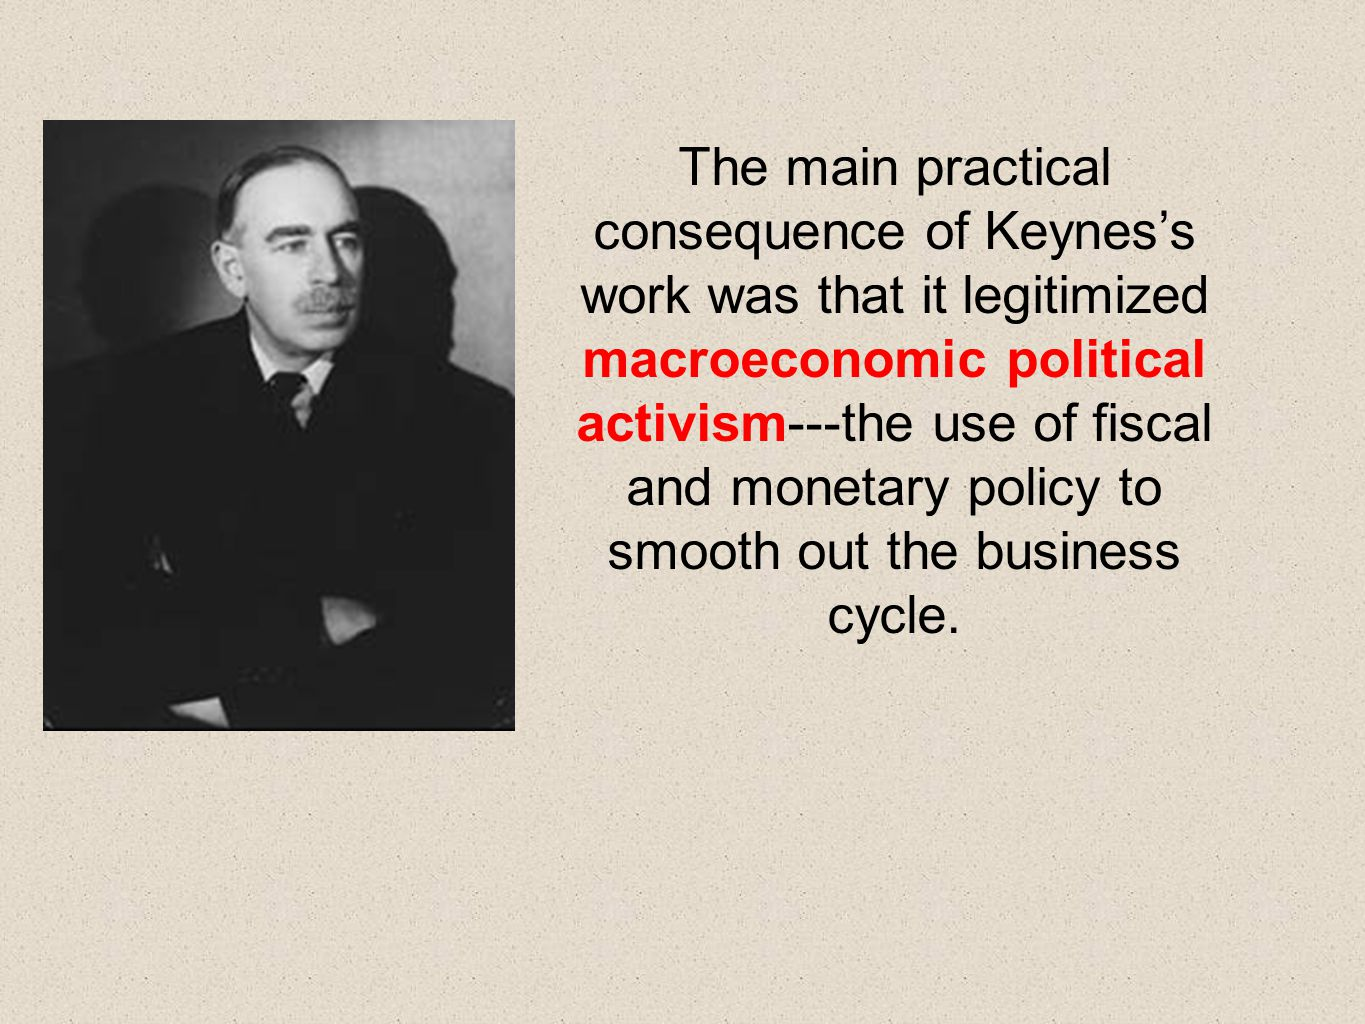 The main practical consequence of Keynes's work was that it legitimized macroeconomic political activism---the use of fiscal and monetary policy to sm